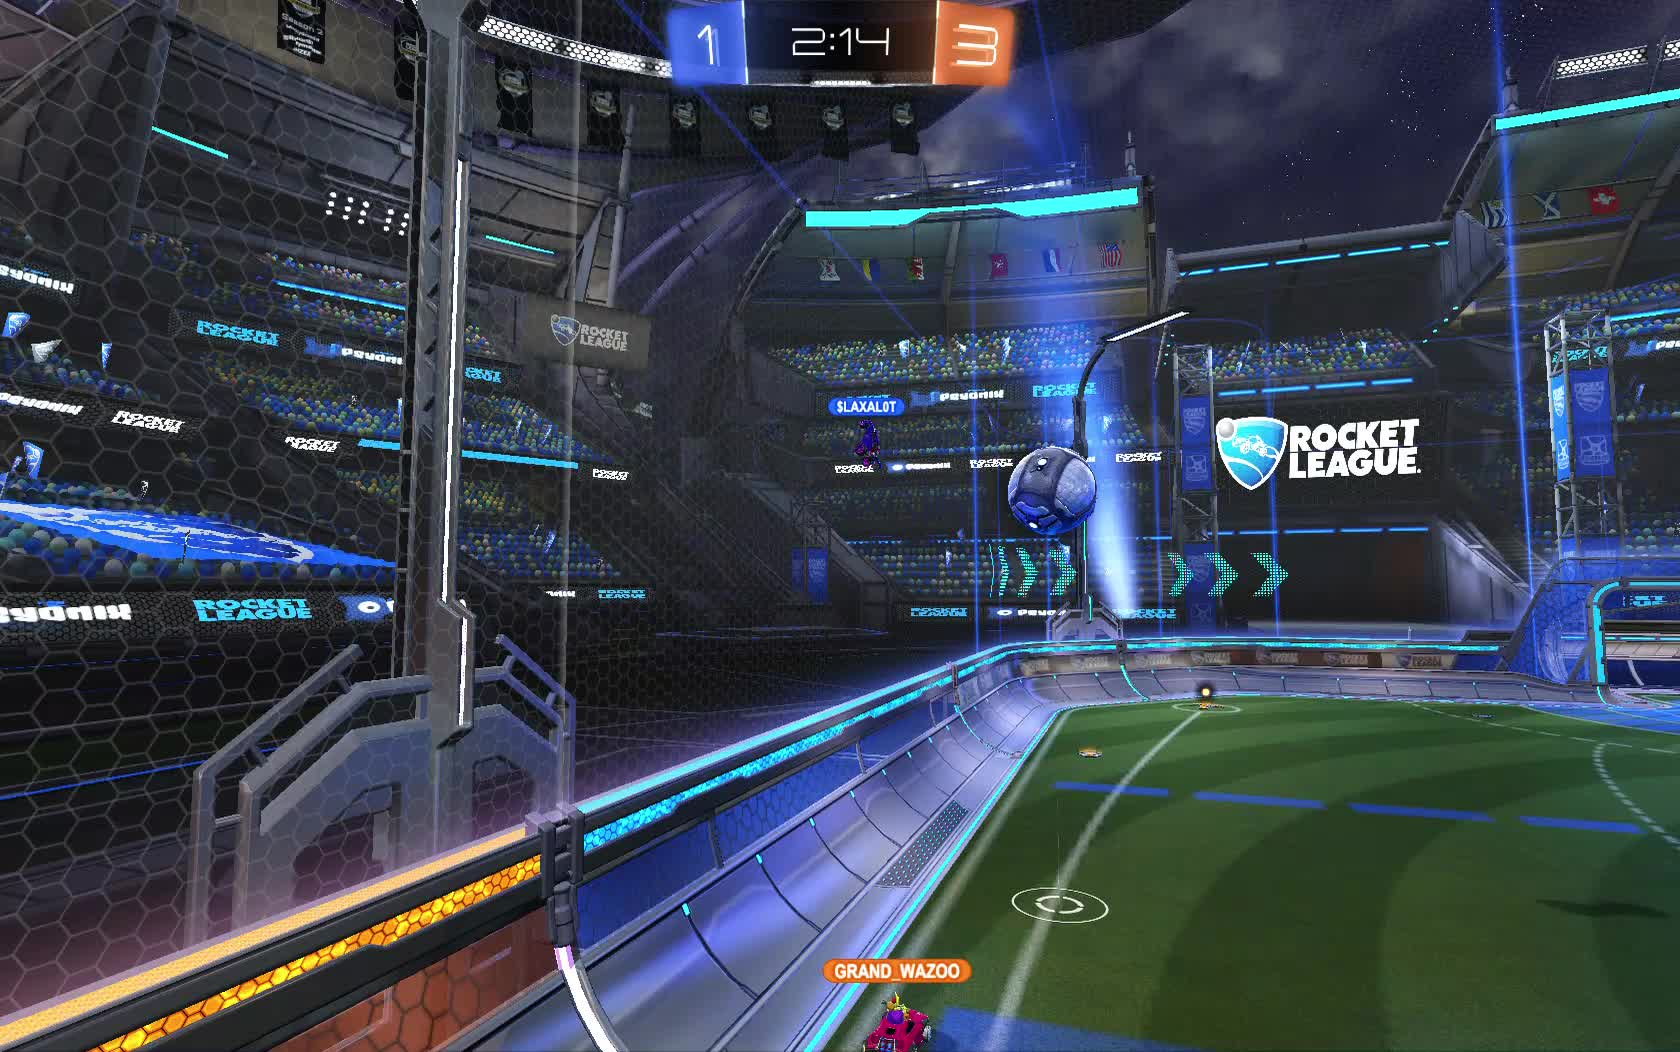 Rocket League, Rocket League GIFs